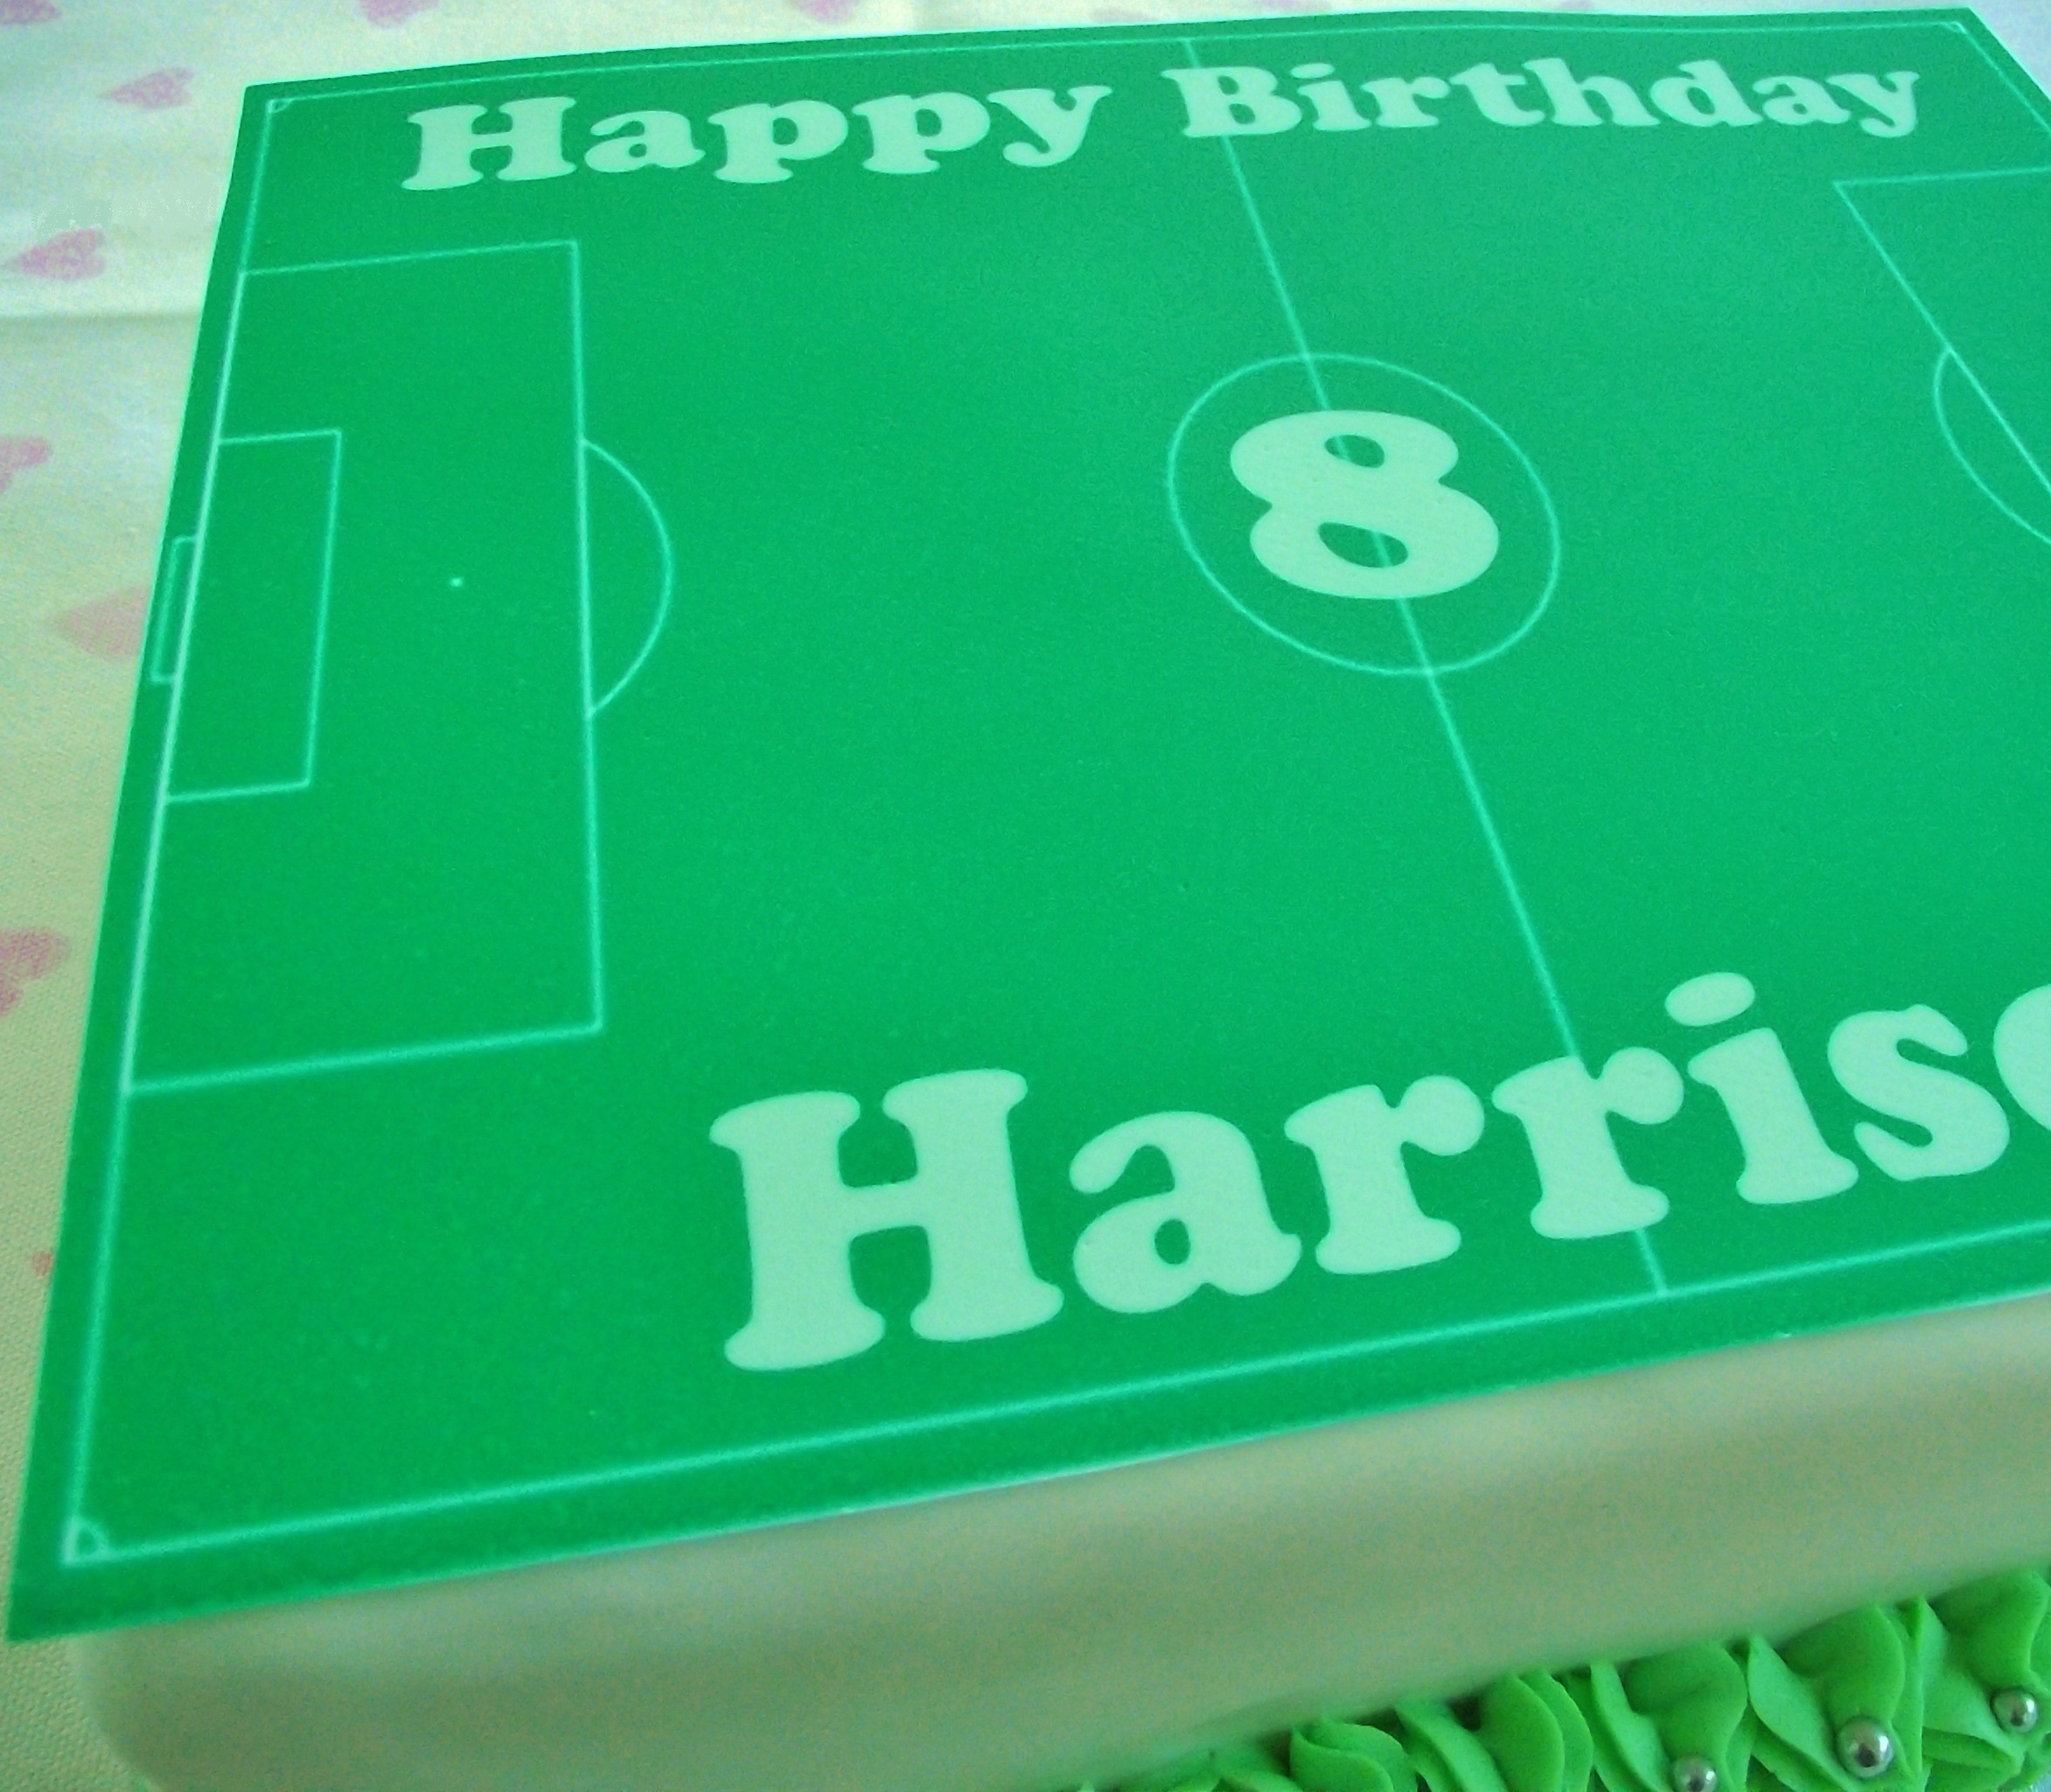 Football Pitch Cake Topper Football Pitch Cake Topper